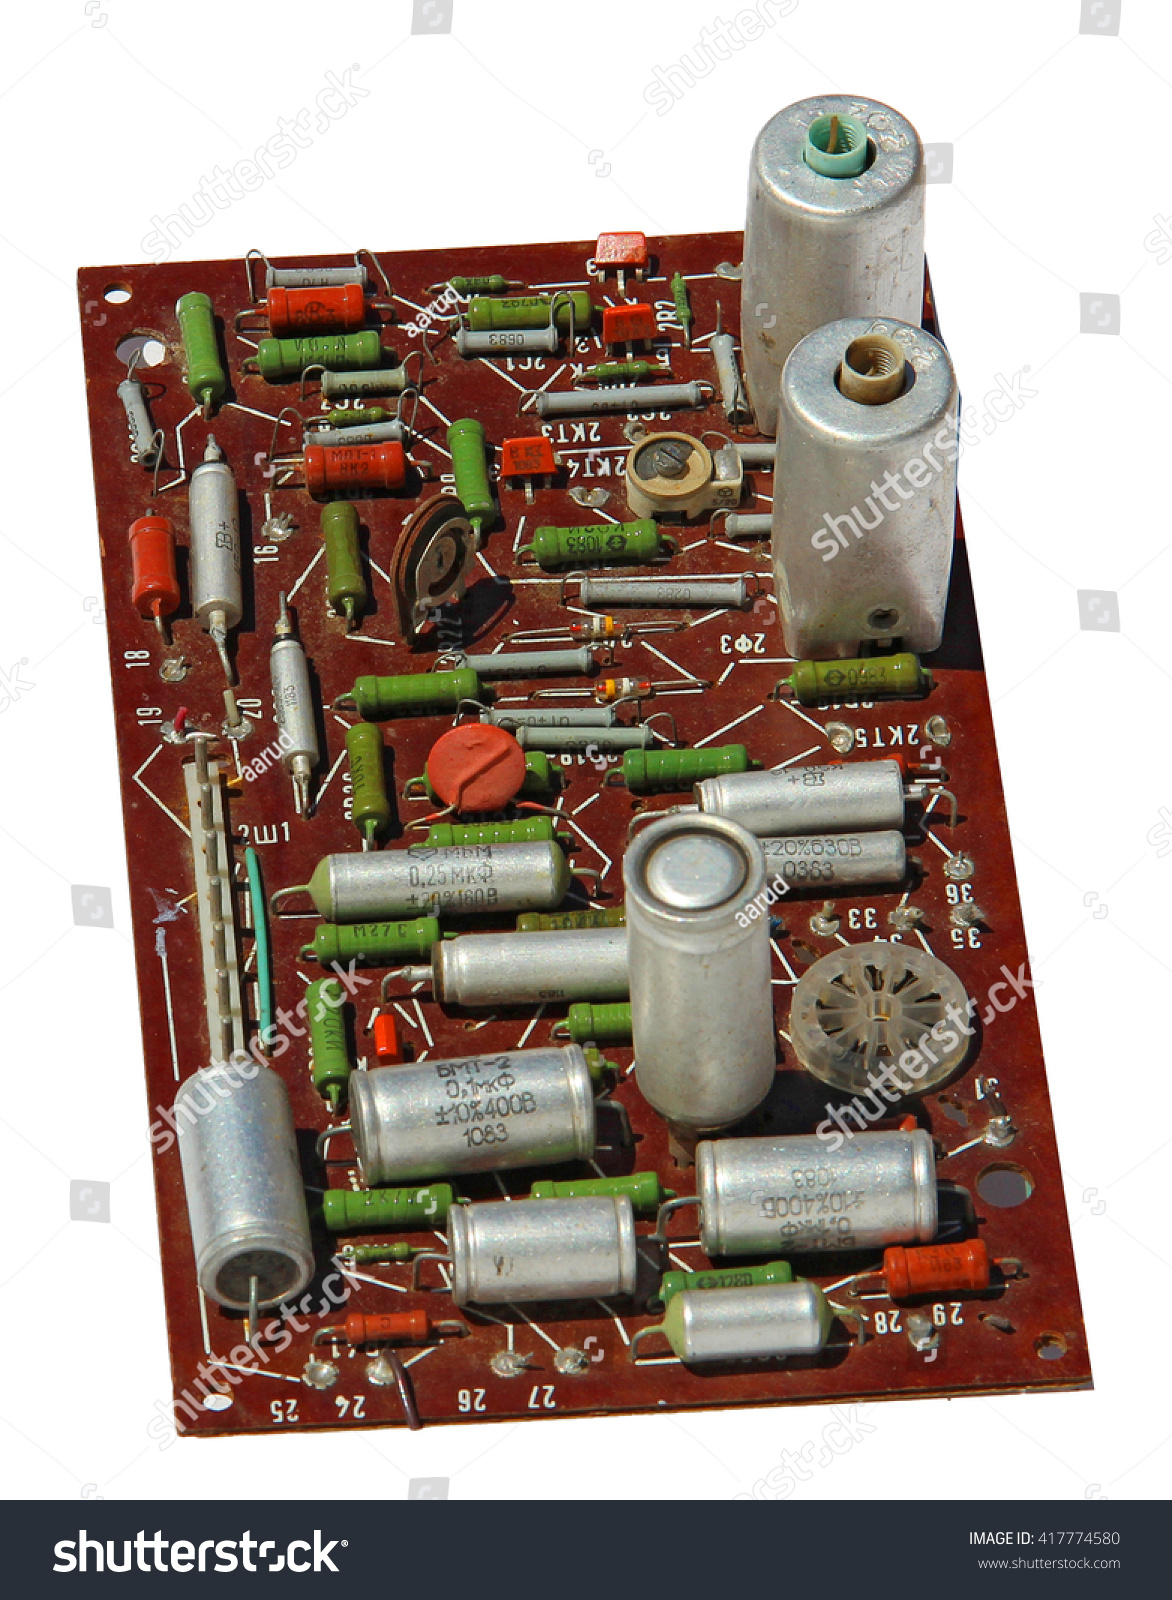 Old Rarity Radio Tv Printed Circuit Stock Photo Edit Now 417774580 Board With Electronic Components Capacitor Resistance